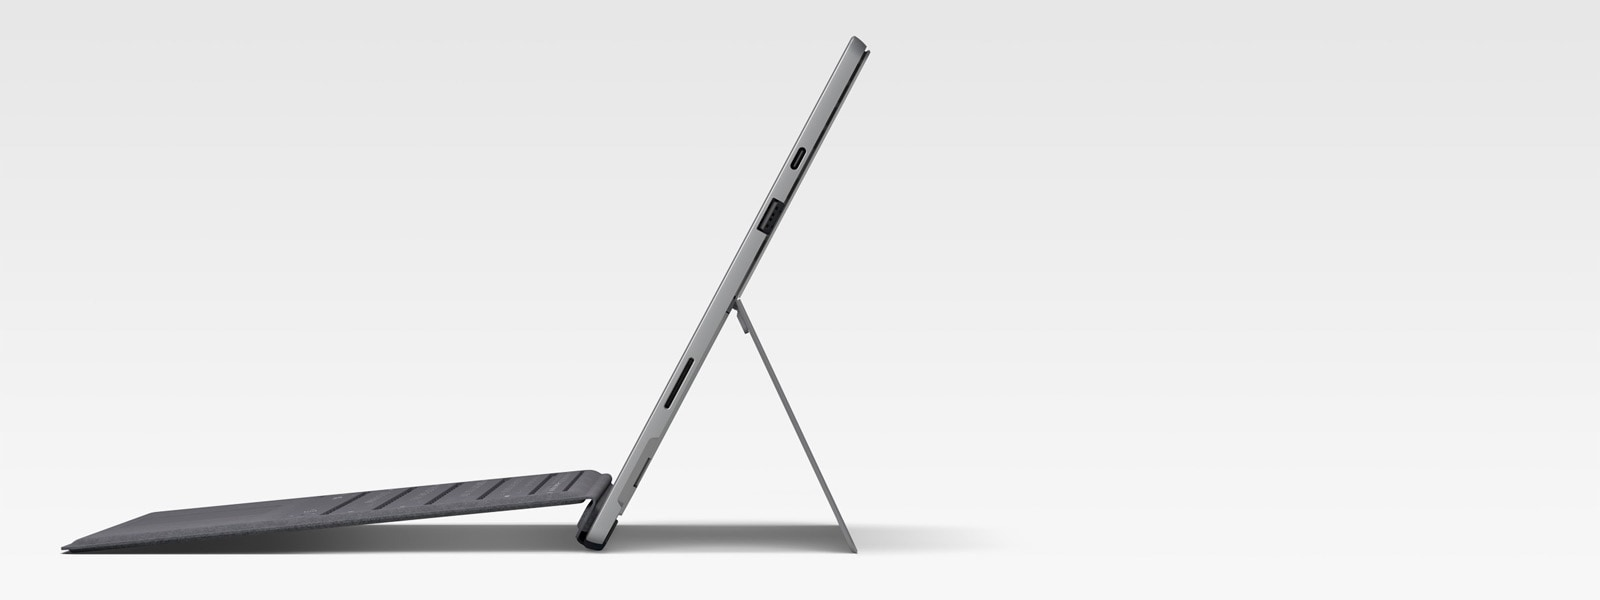 Surface Pro 7 im Laptop-Modus mit Surface Pro Signature Type Cover in Seitenansicht